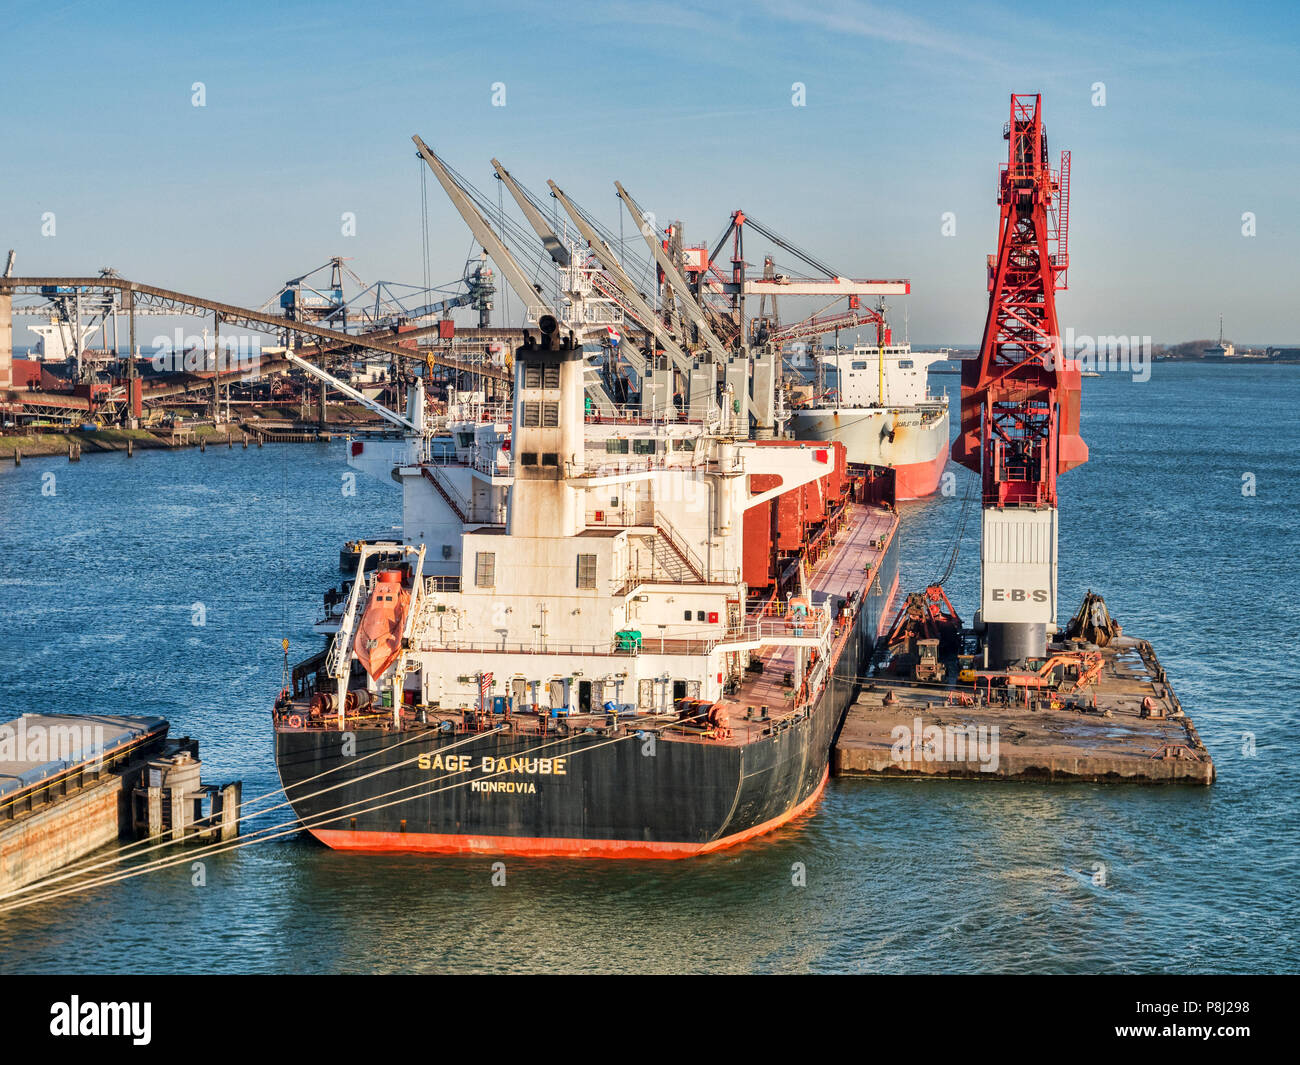 6 April 2018: Rotterdam, Netherlands - Sage Danube bulk carrier at Port of Rotterdam on a sunny spring morning with clear blue sky. - Stock Image